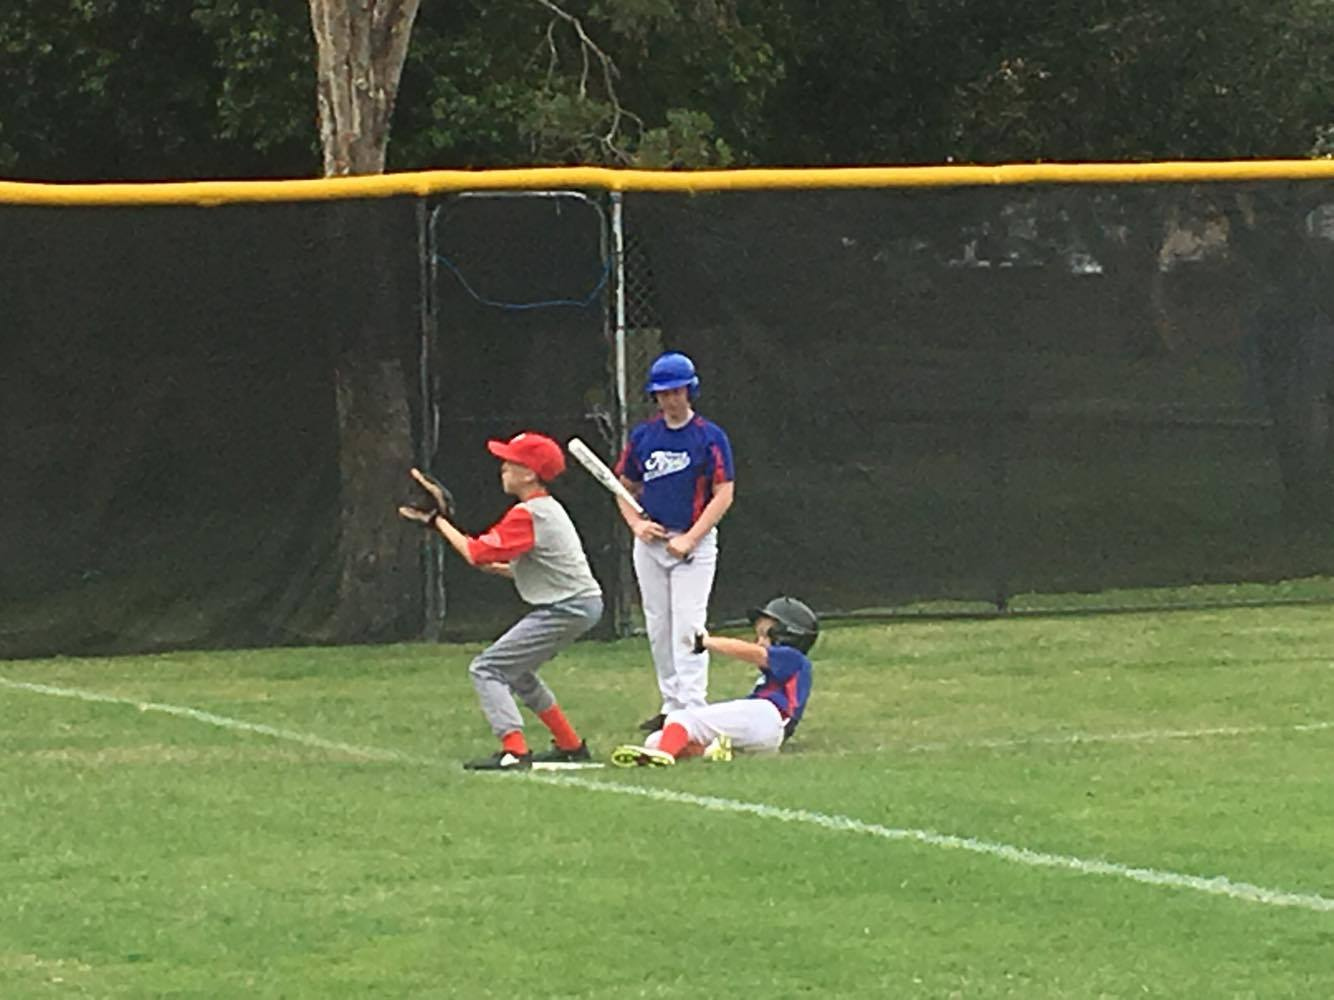 Saturday October 7th - U12 Little League Blue